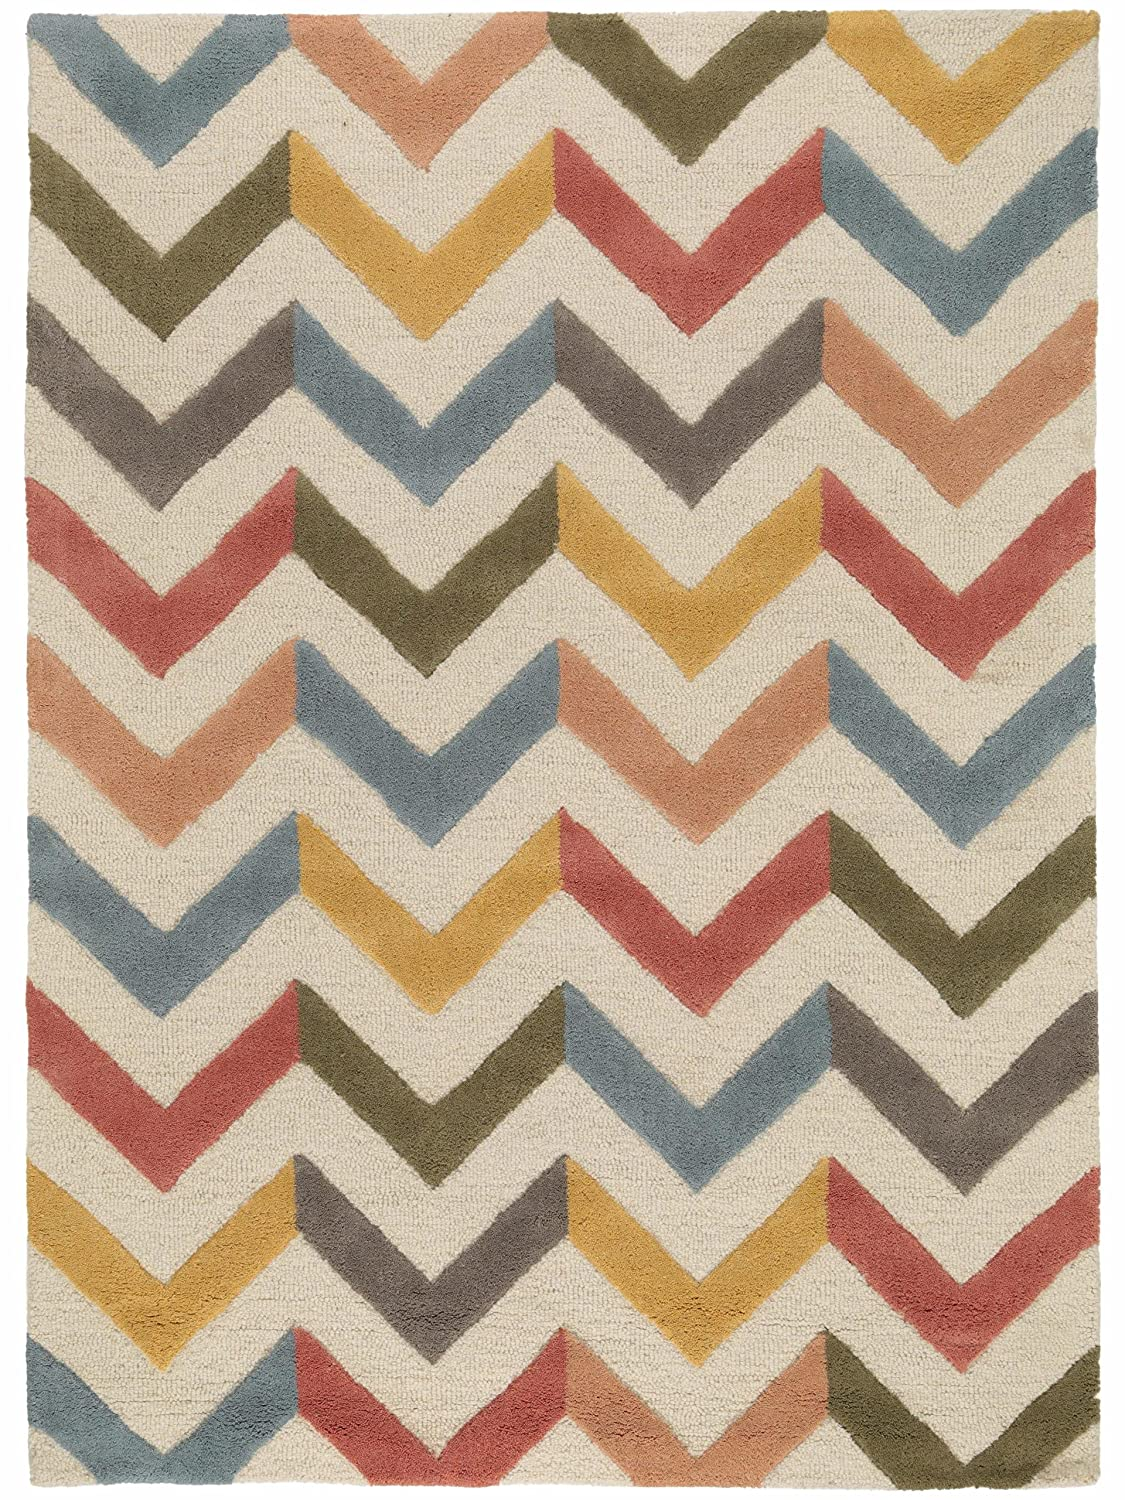 Benuta Wollteppich Windsor, Wolle, Multicolor, 80 x 150.0 x x x 2 cm f220b3